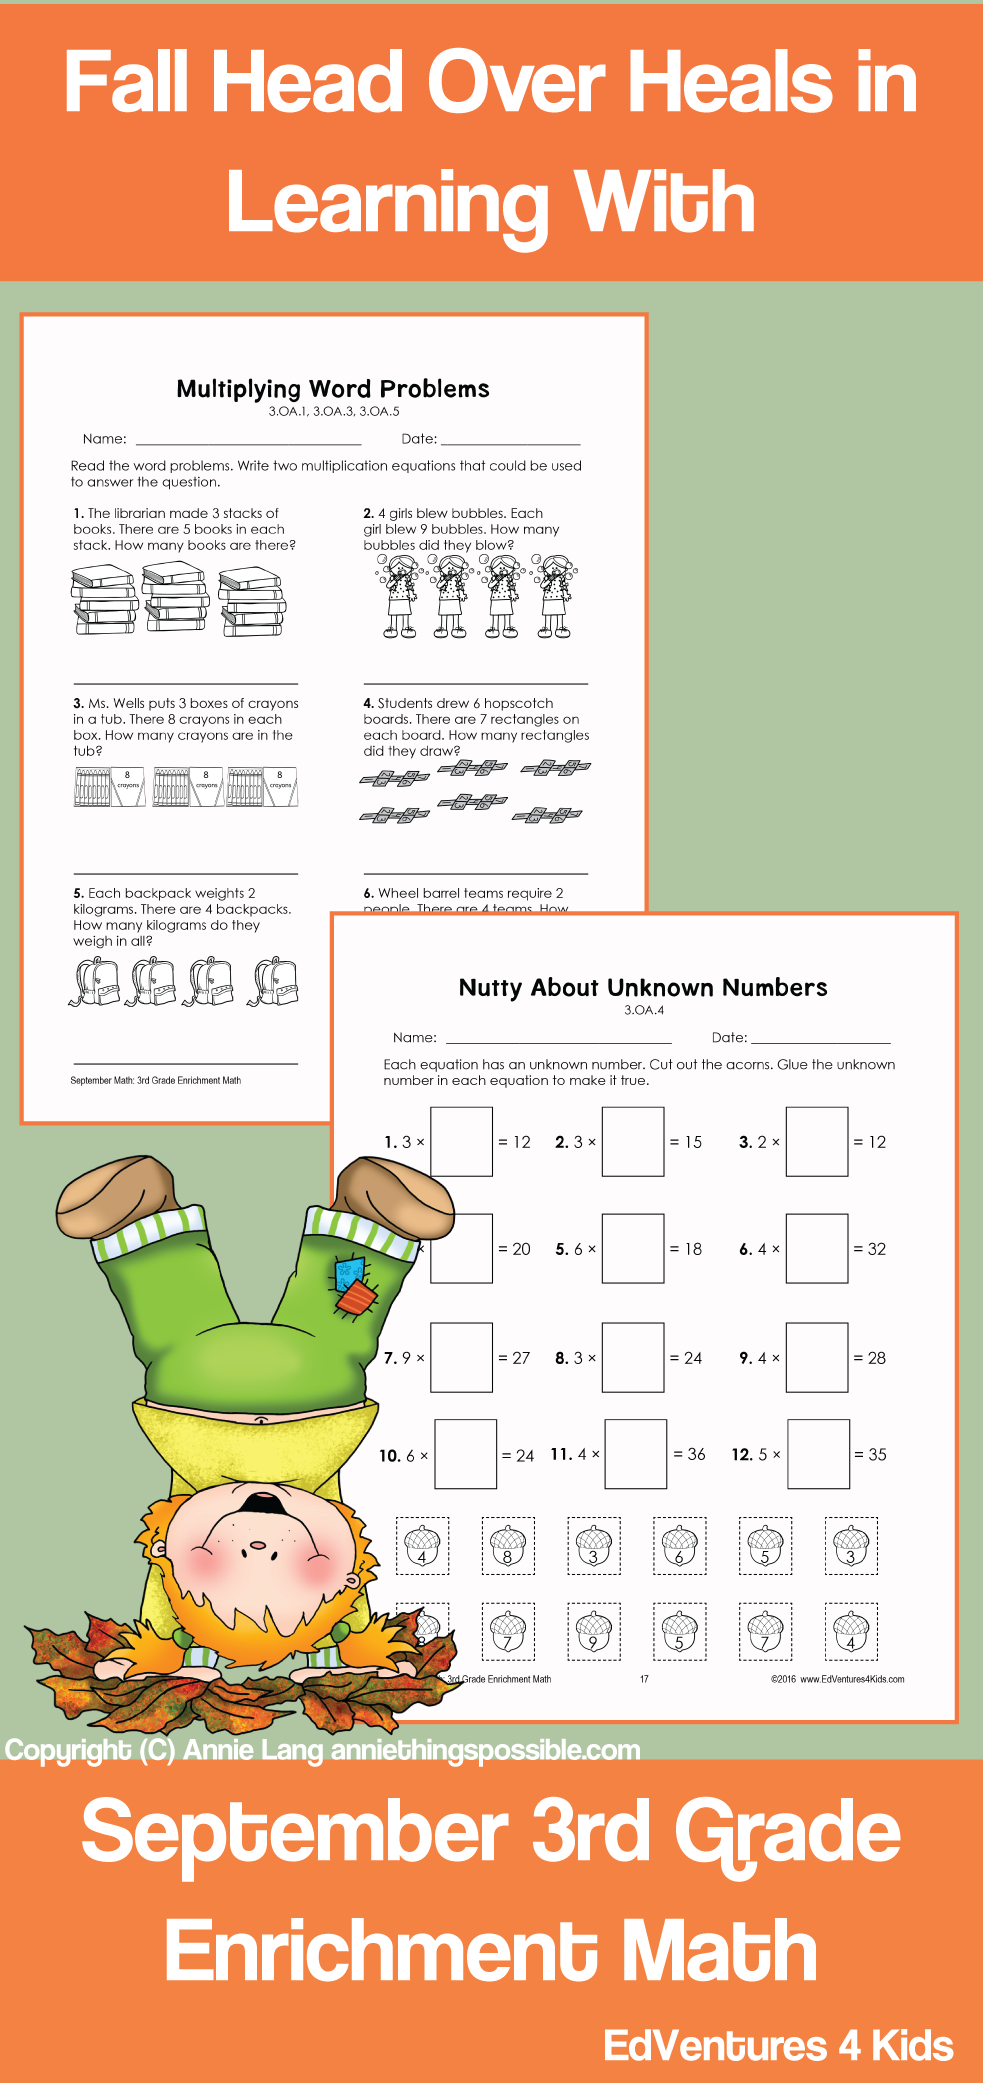 hight resolution of September Enrichment Math for 3rd Grade is a collection of 15 challenging